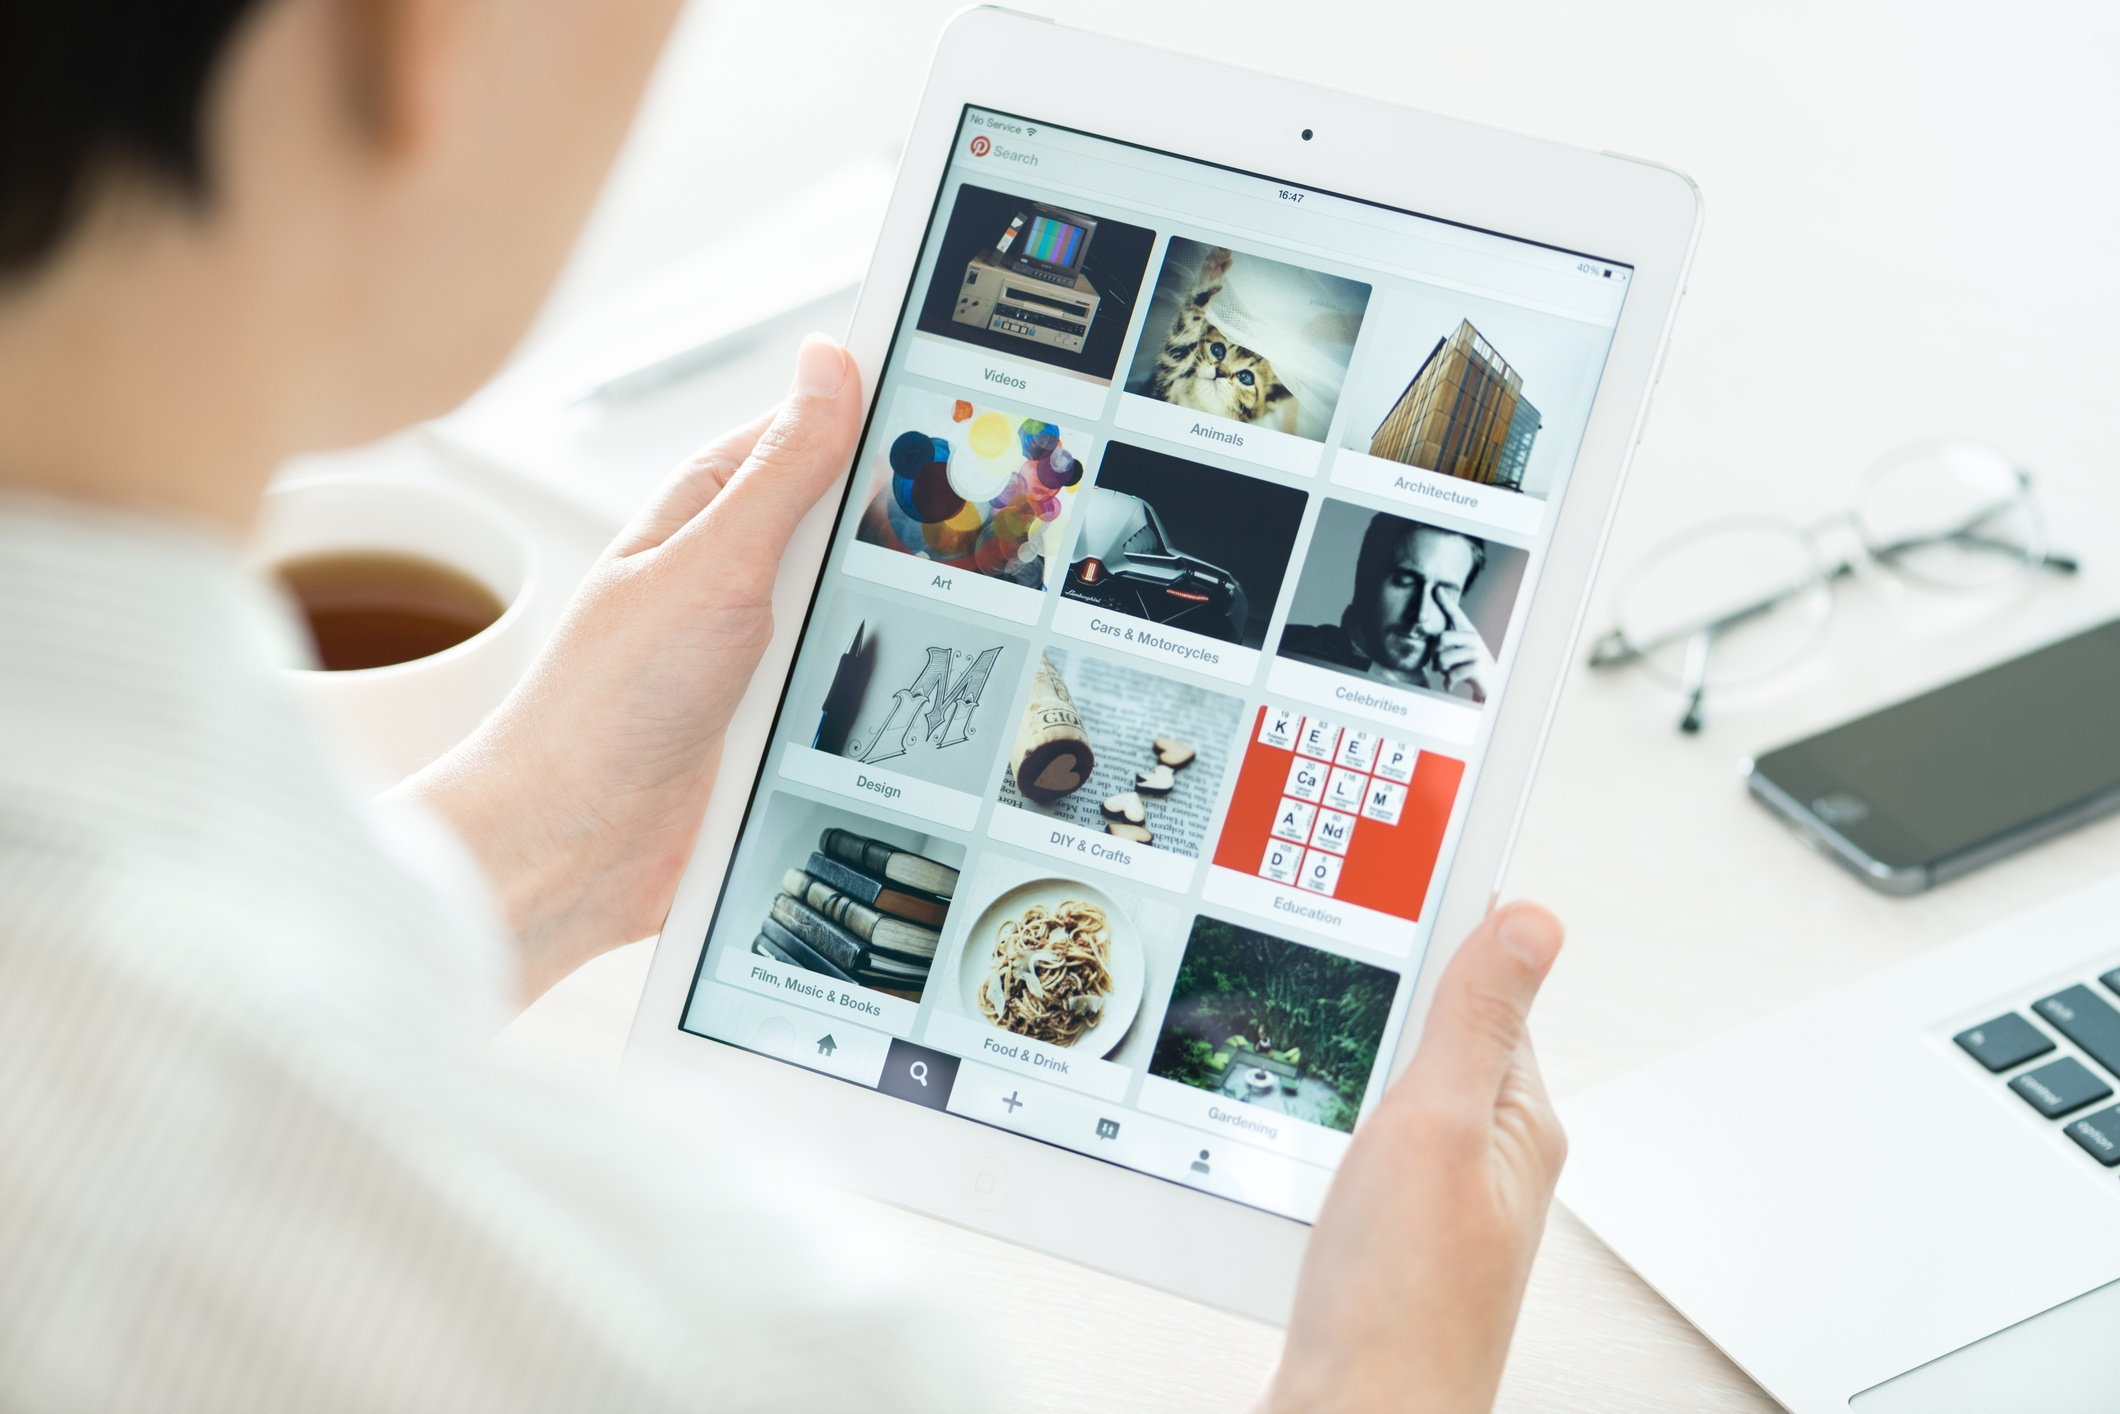 Herramientas y tips para usar Pinterest en tu estrategia de Marketing